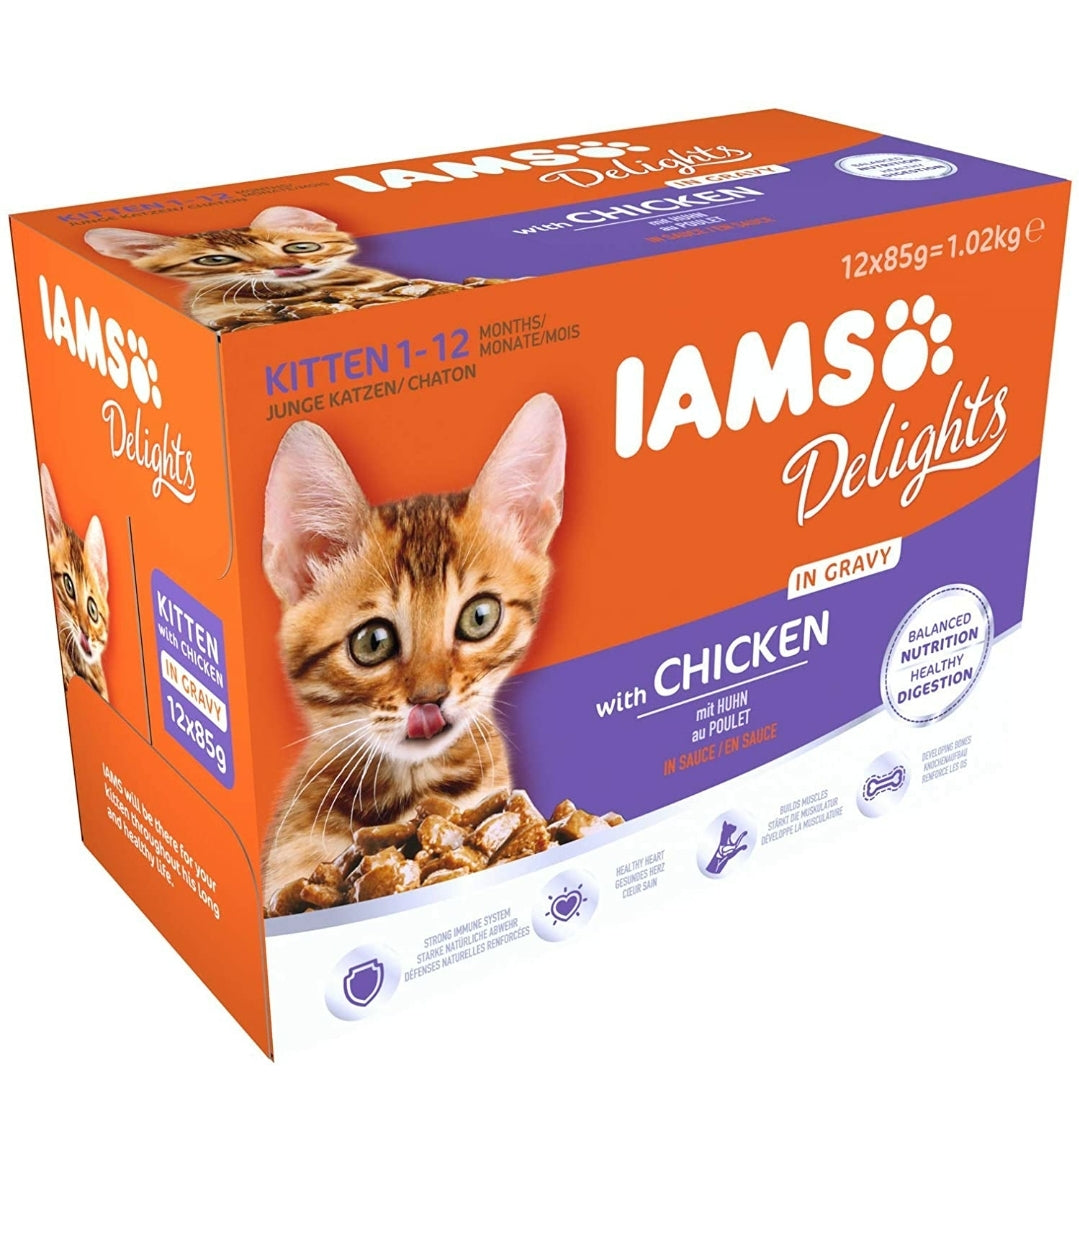 IAMS Delights Wet Cat Food for Kittens 12 x 85g | Chicken, Cat Food by Dog In A Box